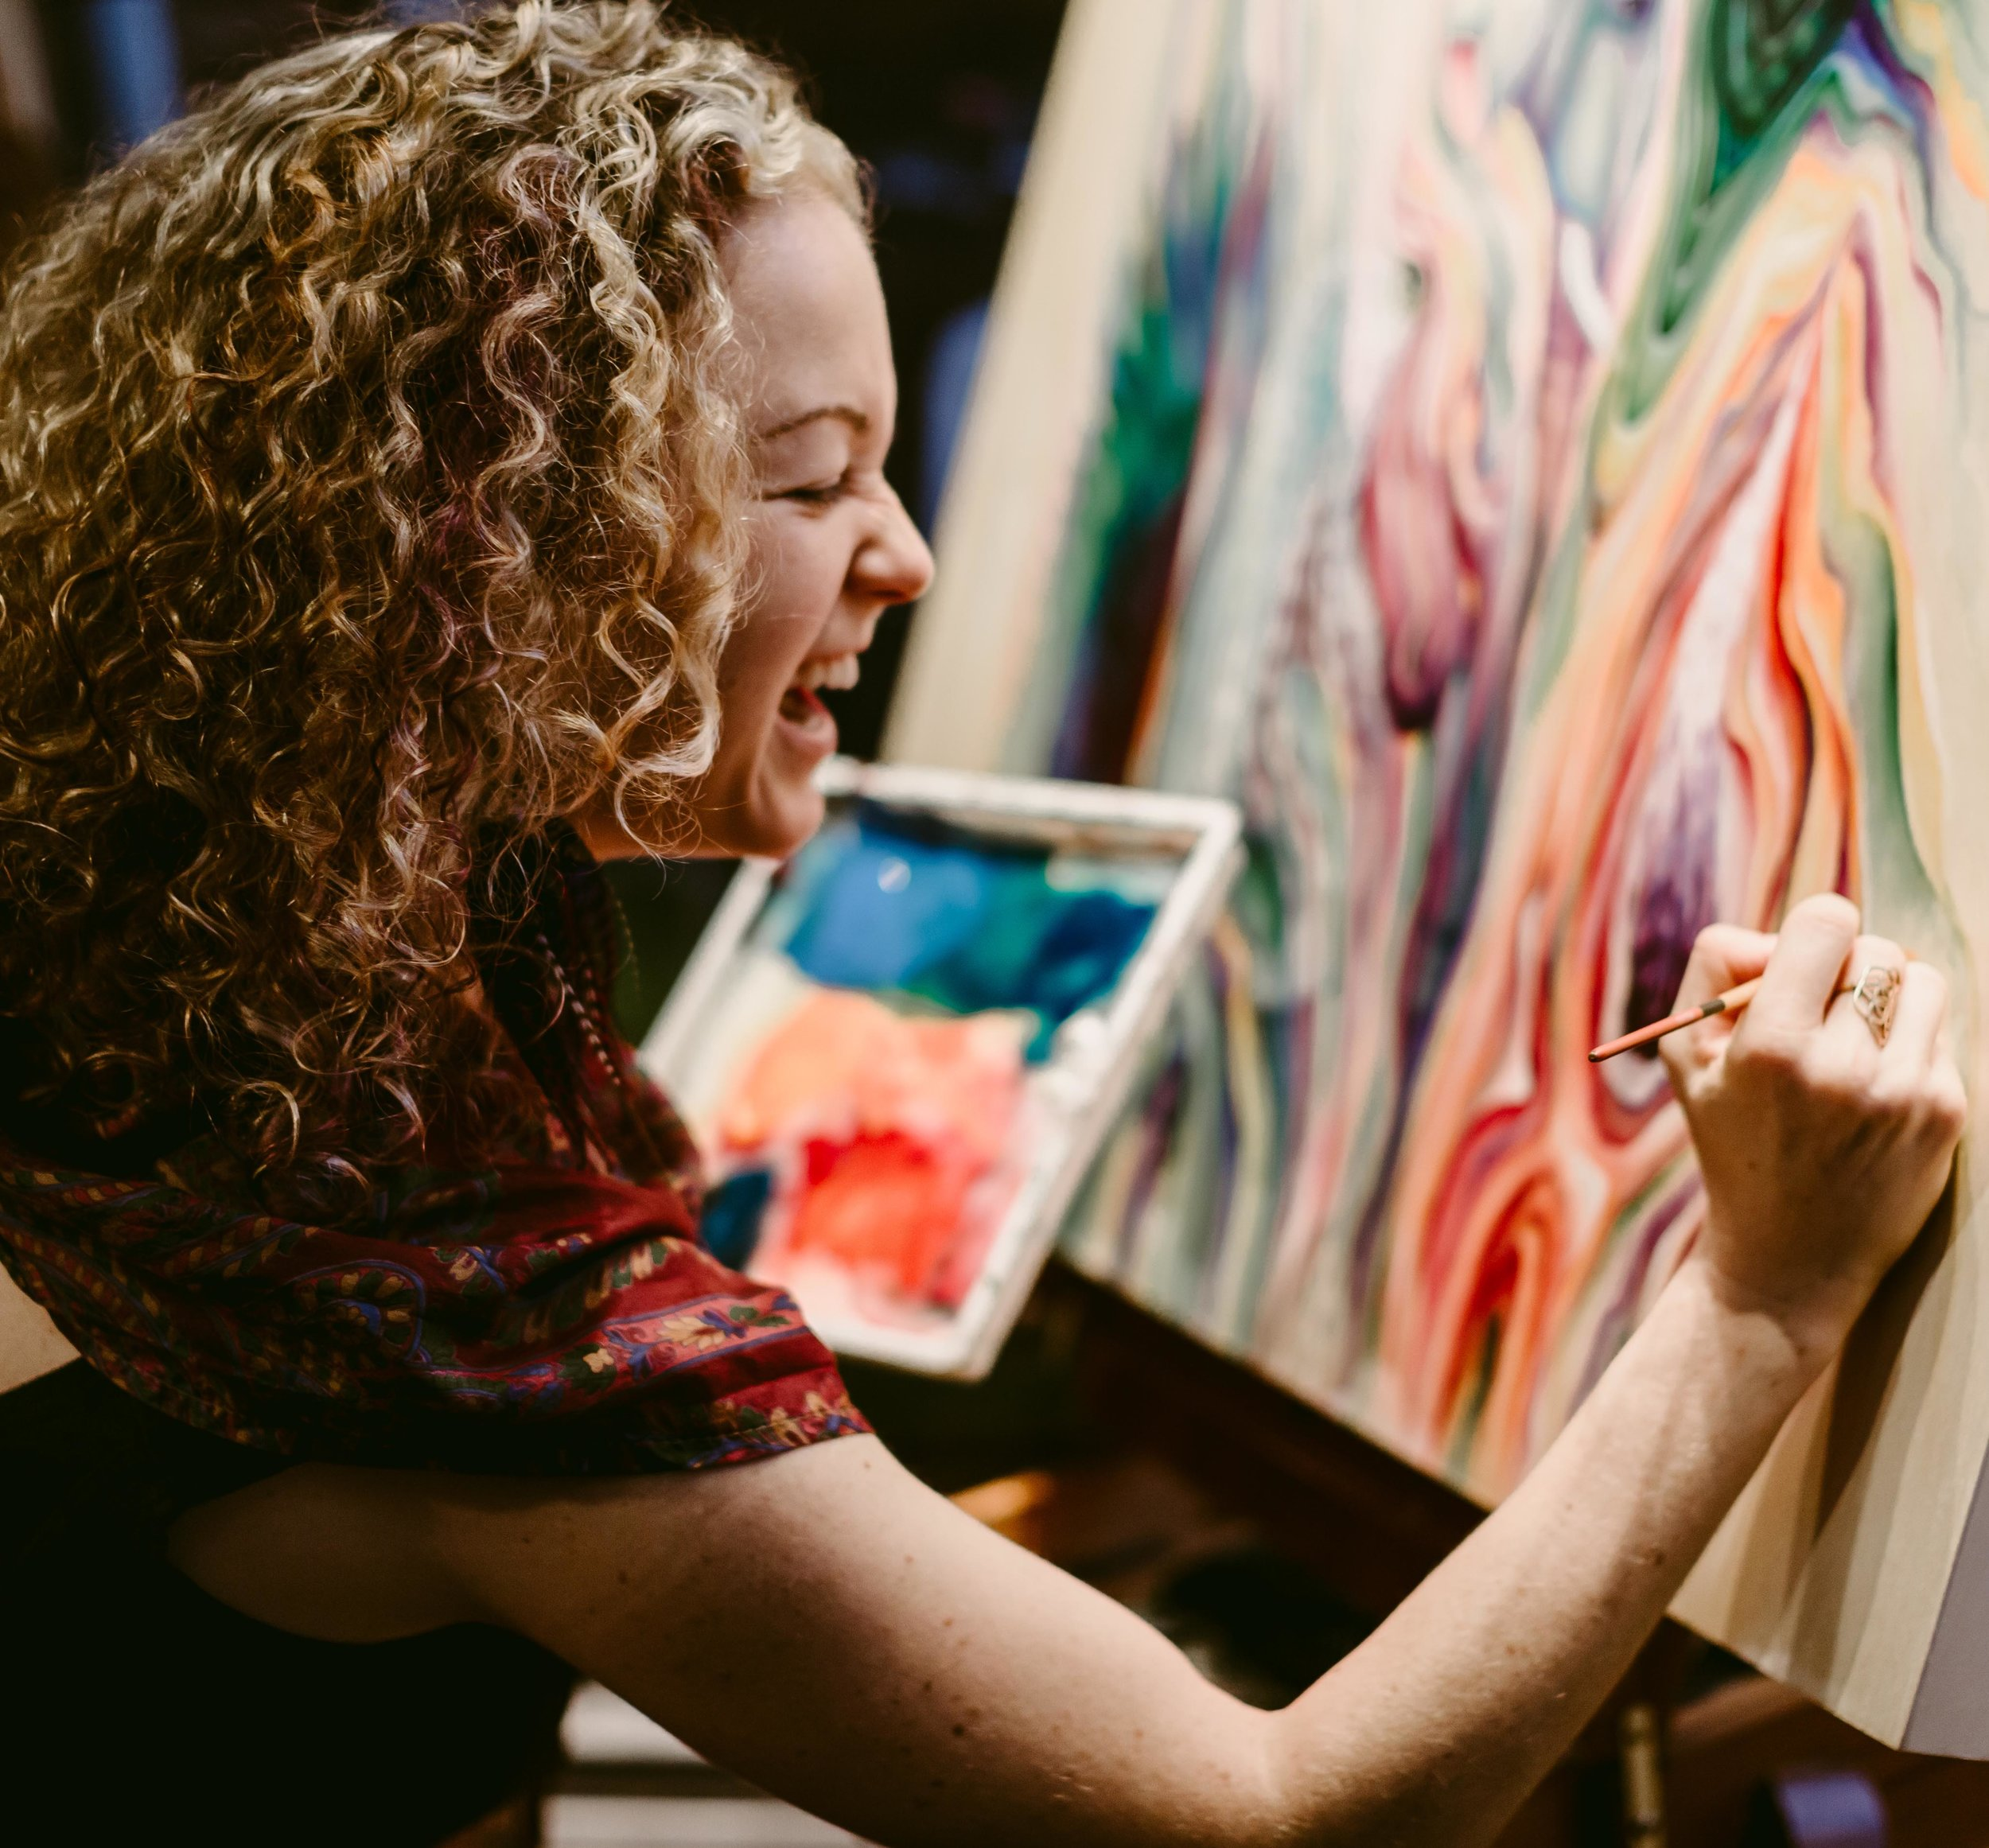 LOVING live painting at a New Year's Eve Ball in Vancouver! (Photo Credit: Kristine Cofsky, kristinecofskyphotography.com)